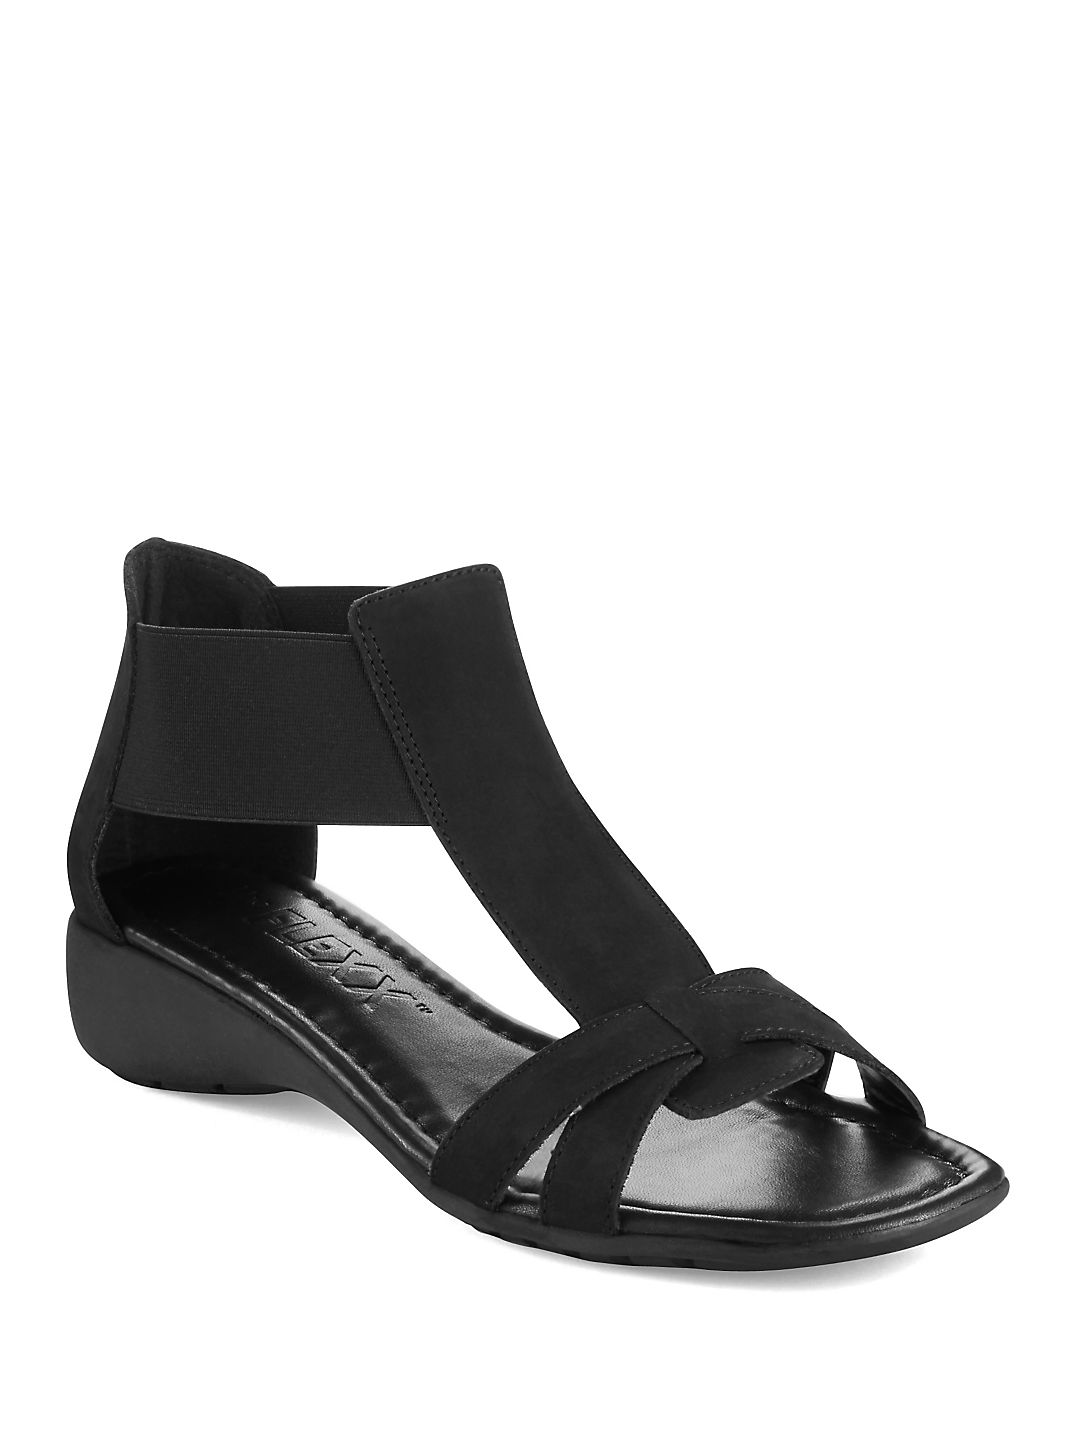 Band Together Saffiano Leather T-Strap Sandals